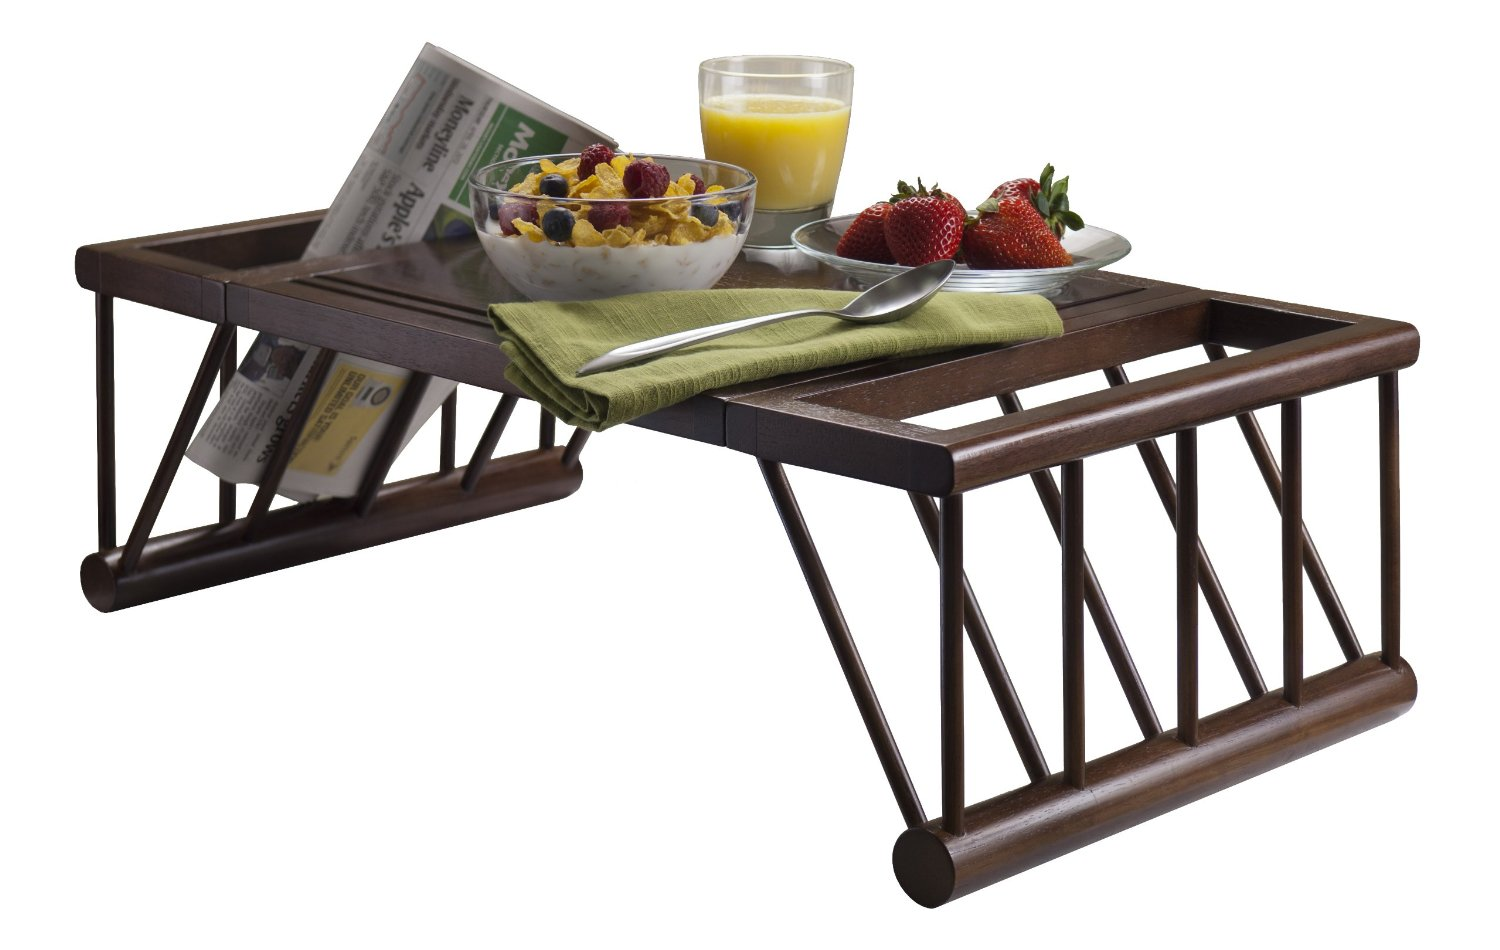 Lap And Bed Breakfast Tray Gift Search